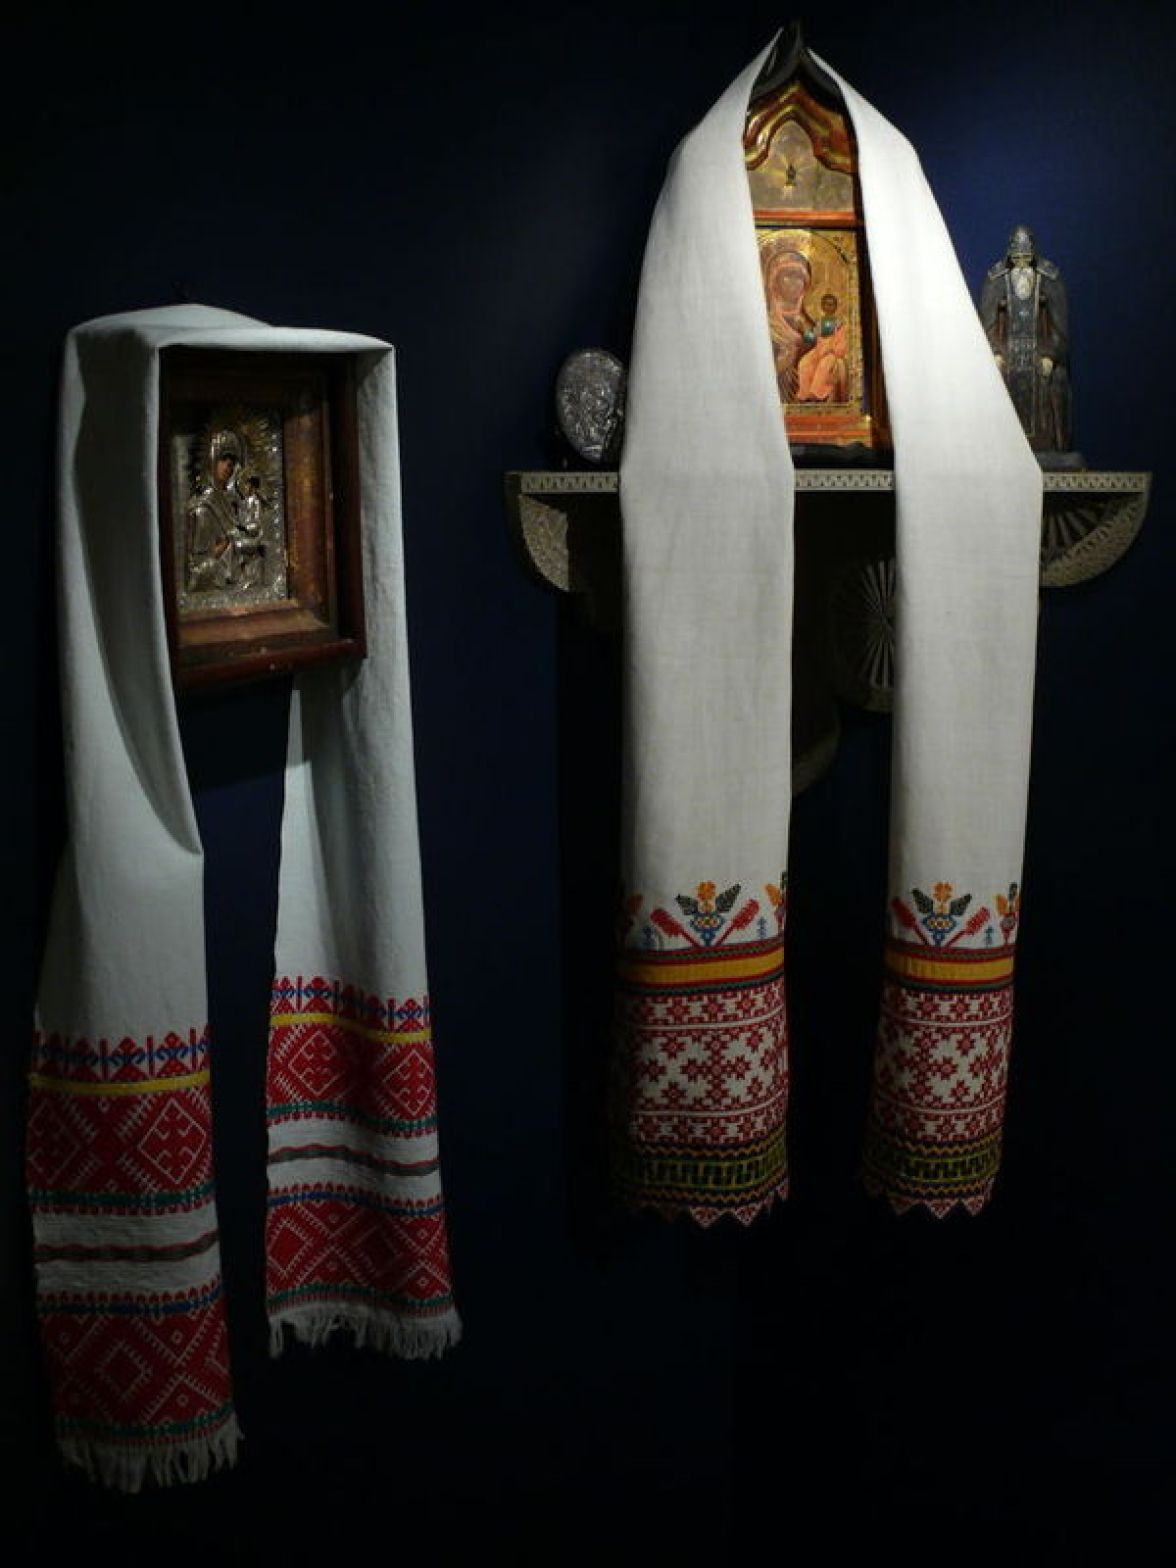 Red Corner, late 19th-early 20th century. Vologda region, Russia. Private Collection of Susan Johnson. Cloth, thread.